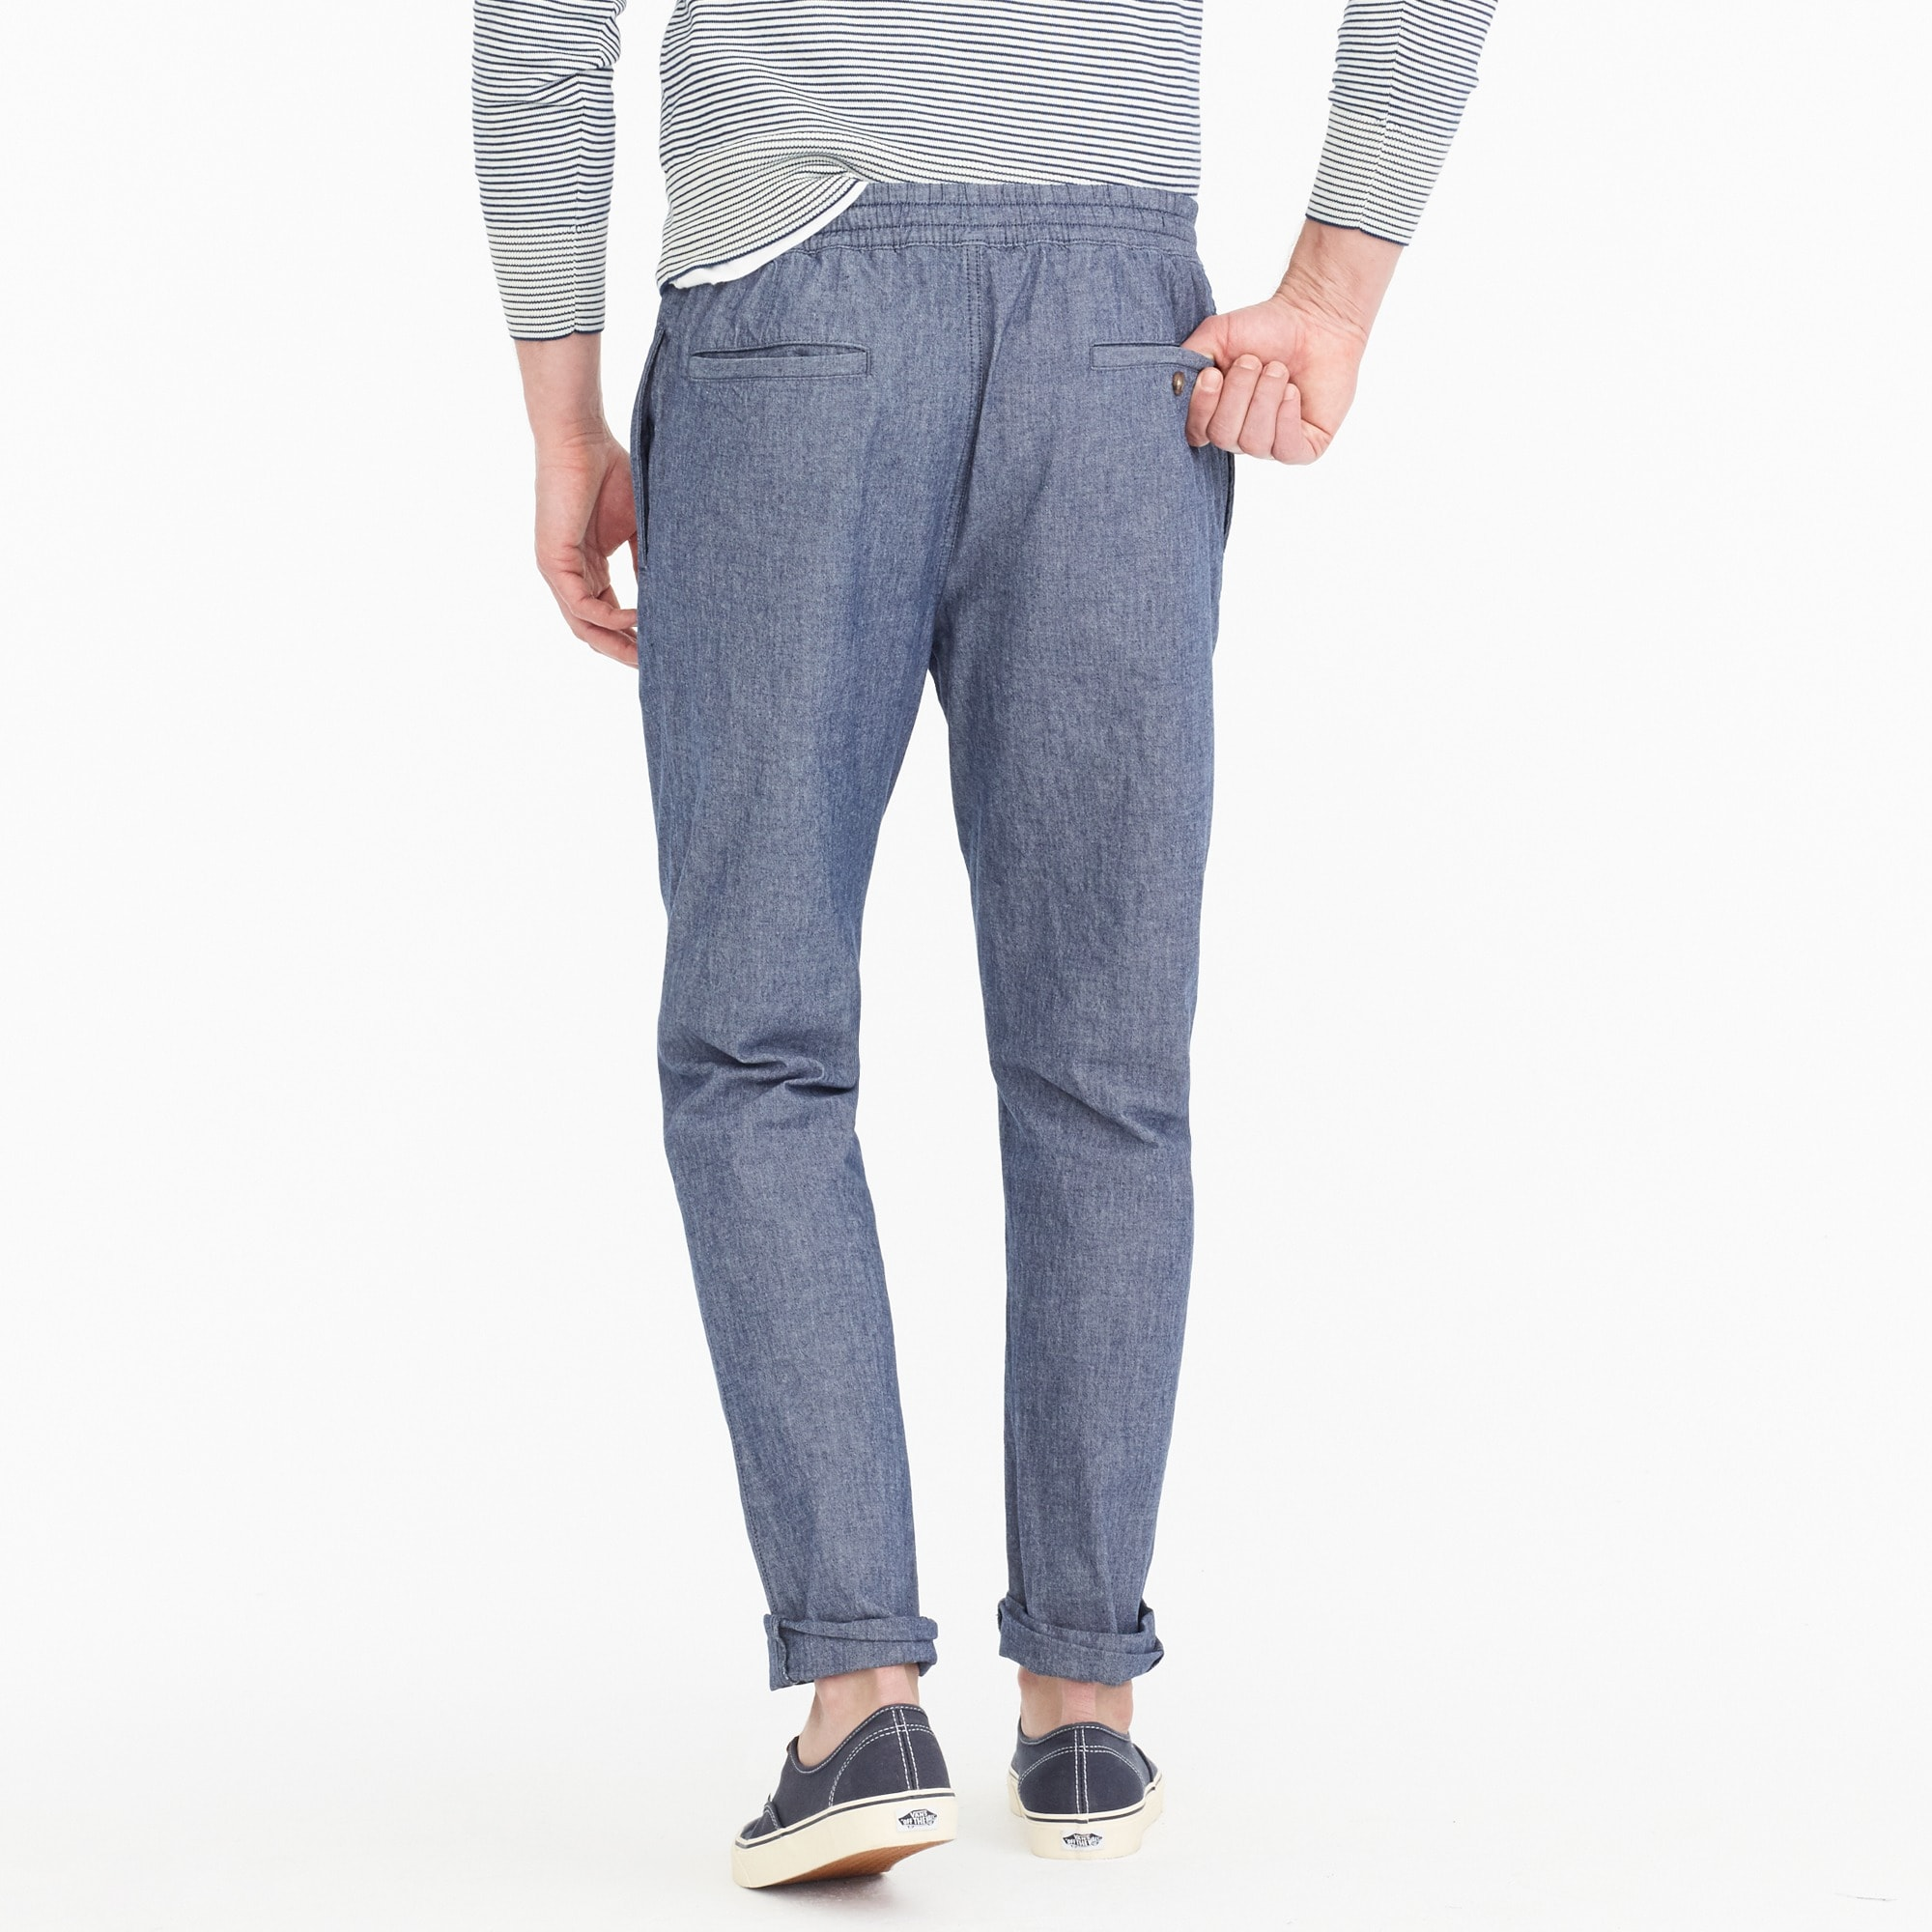 Drawstring pant in chambray